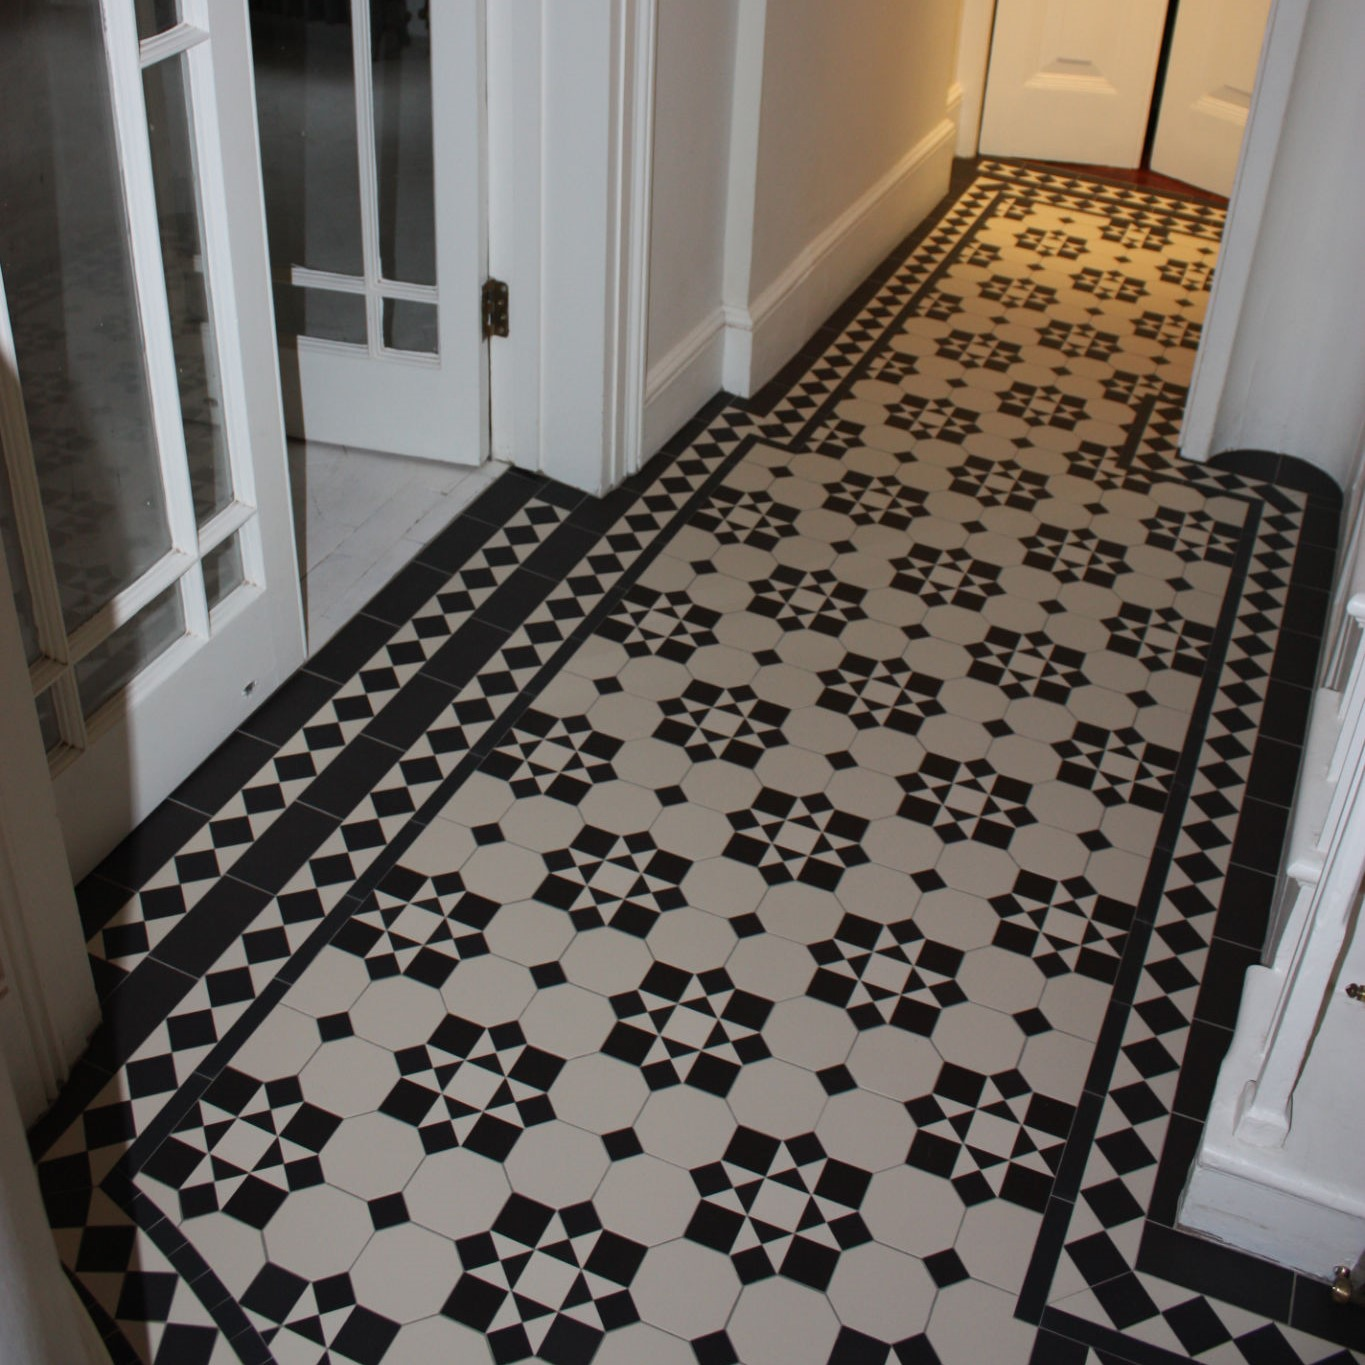 Olde english victorian floor katrine pattern edinburgh for Old english floor